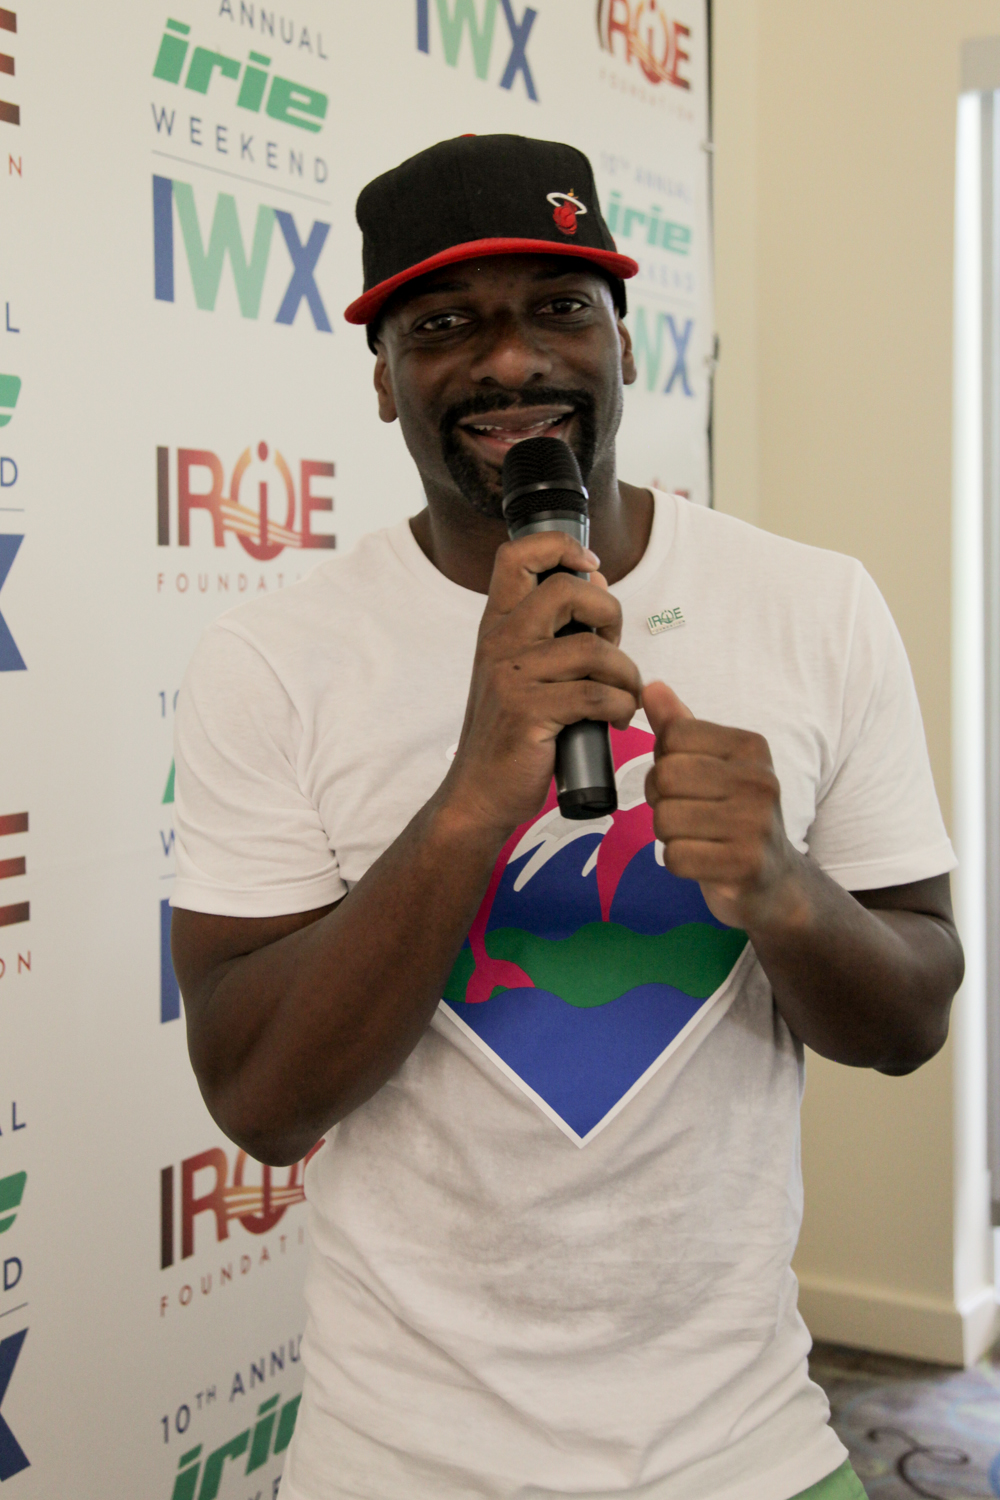 Youth Golf Clinic - Irie with Mic Smile.jpg